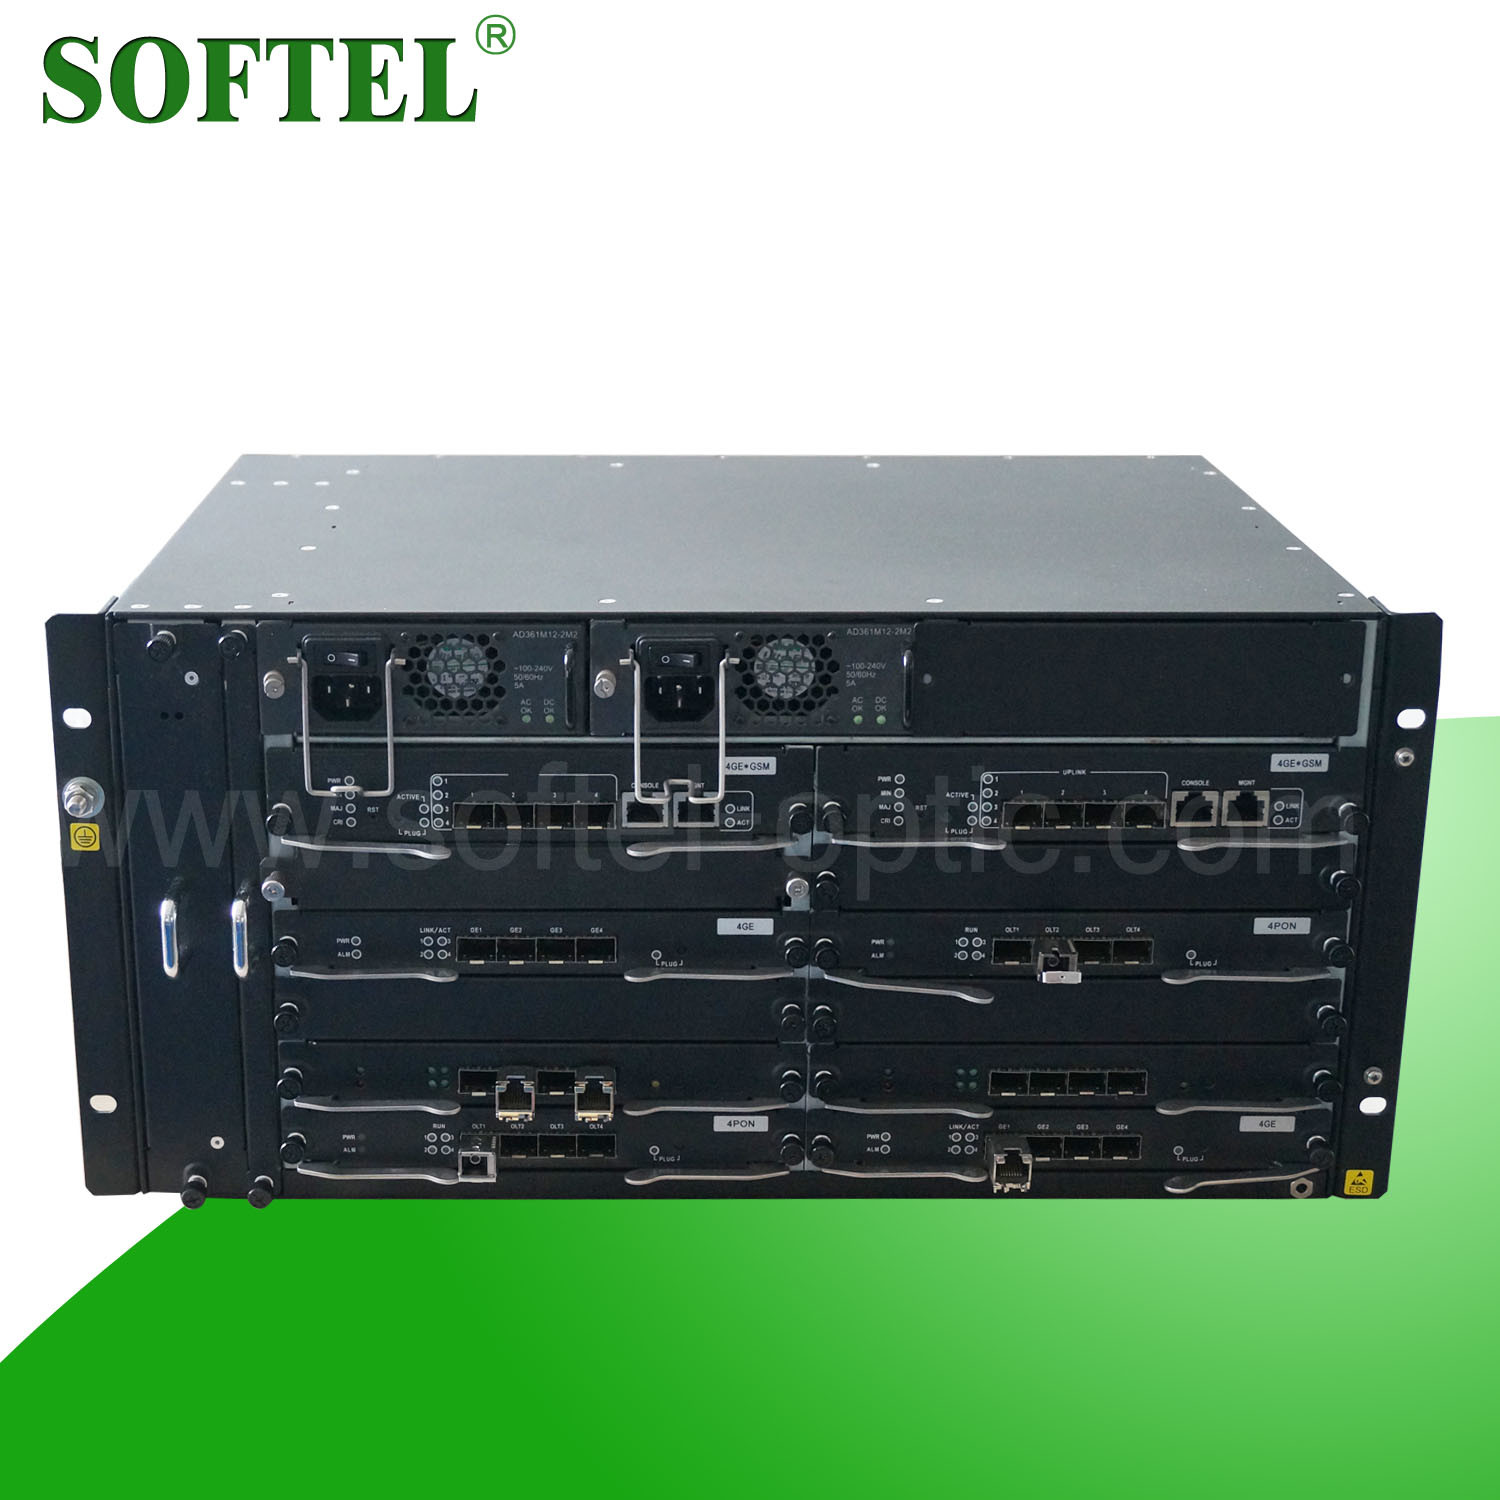 High Quality 5 U Epon Olt with Max 40 SFP Pon Ports 1.25 Gbps Optical Gepon Olt, FTTX Optical Line Terminal in 2014